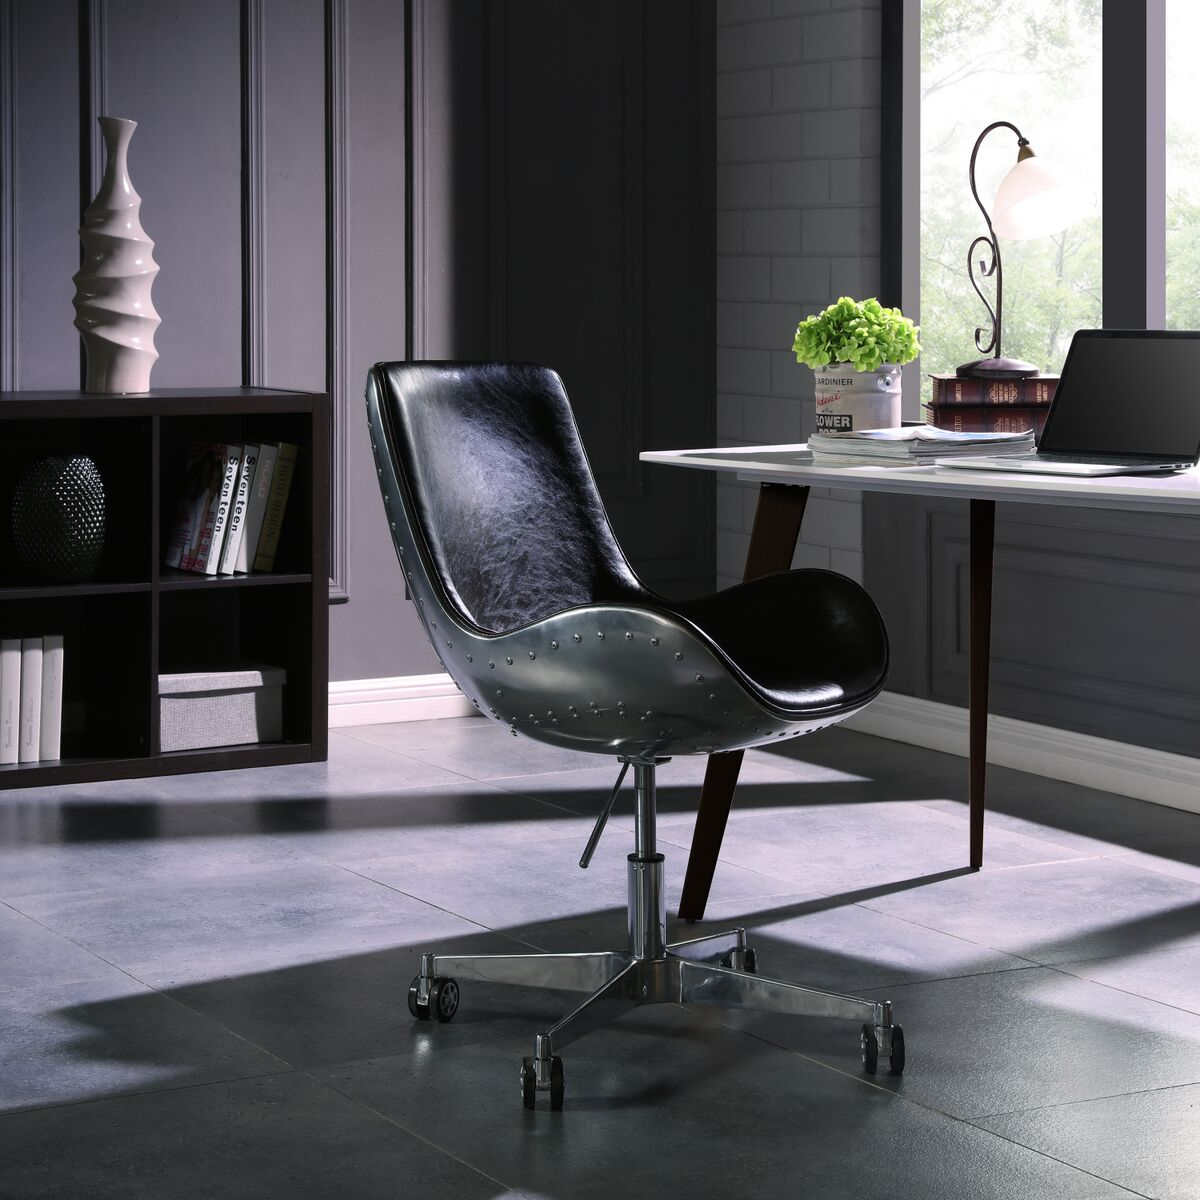 Stylish Distressed Caramel Office Chair in Scoop Style